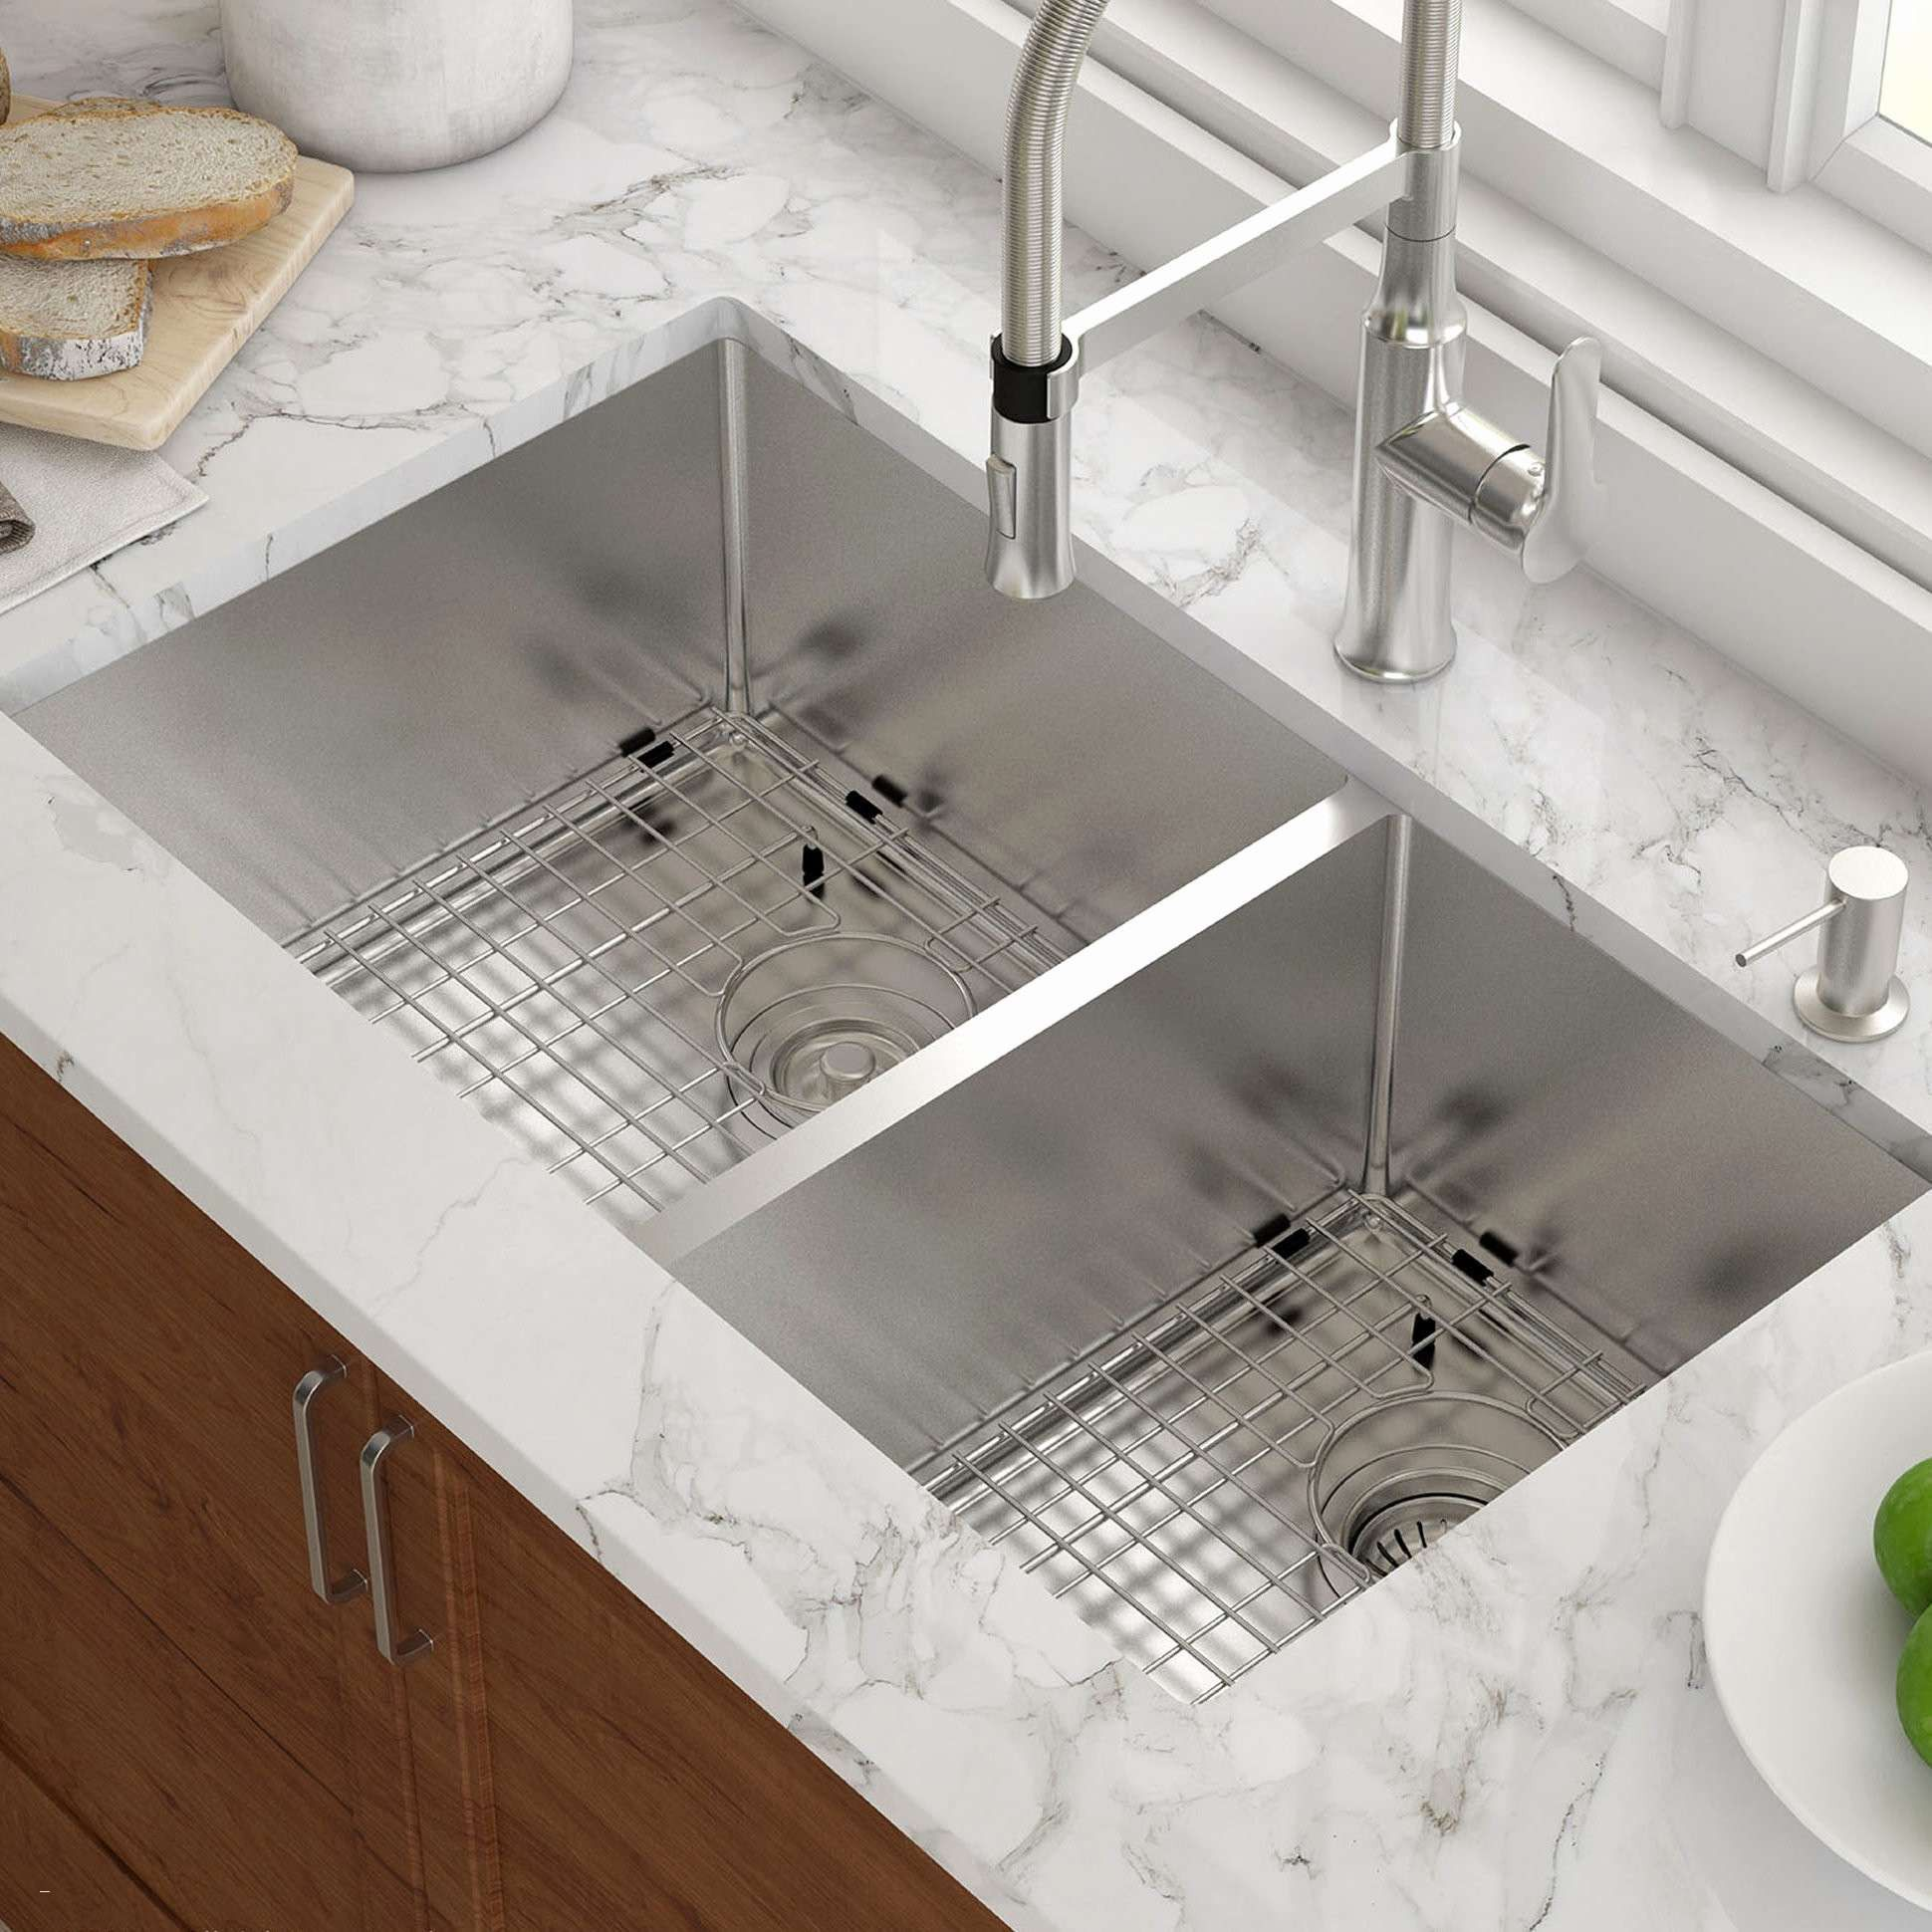 Elegant Picture Of Ceramic Kitchen Sinks Pros And Cons Sink Styles Unique 15 Fresh